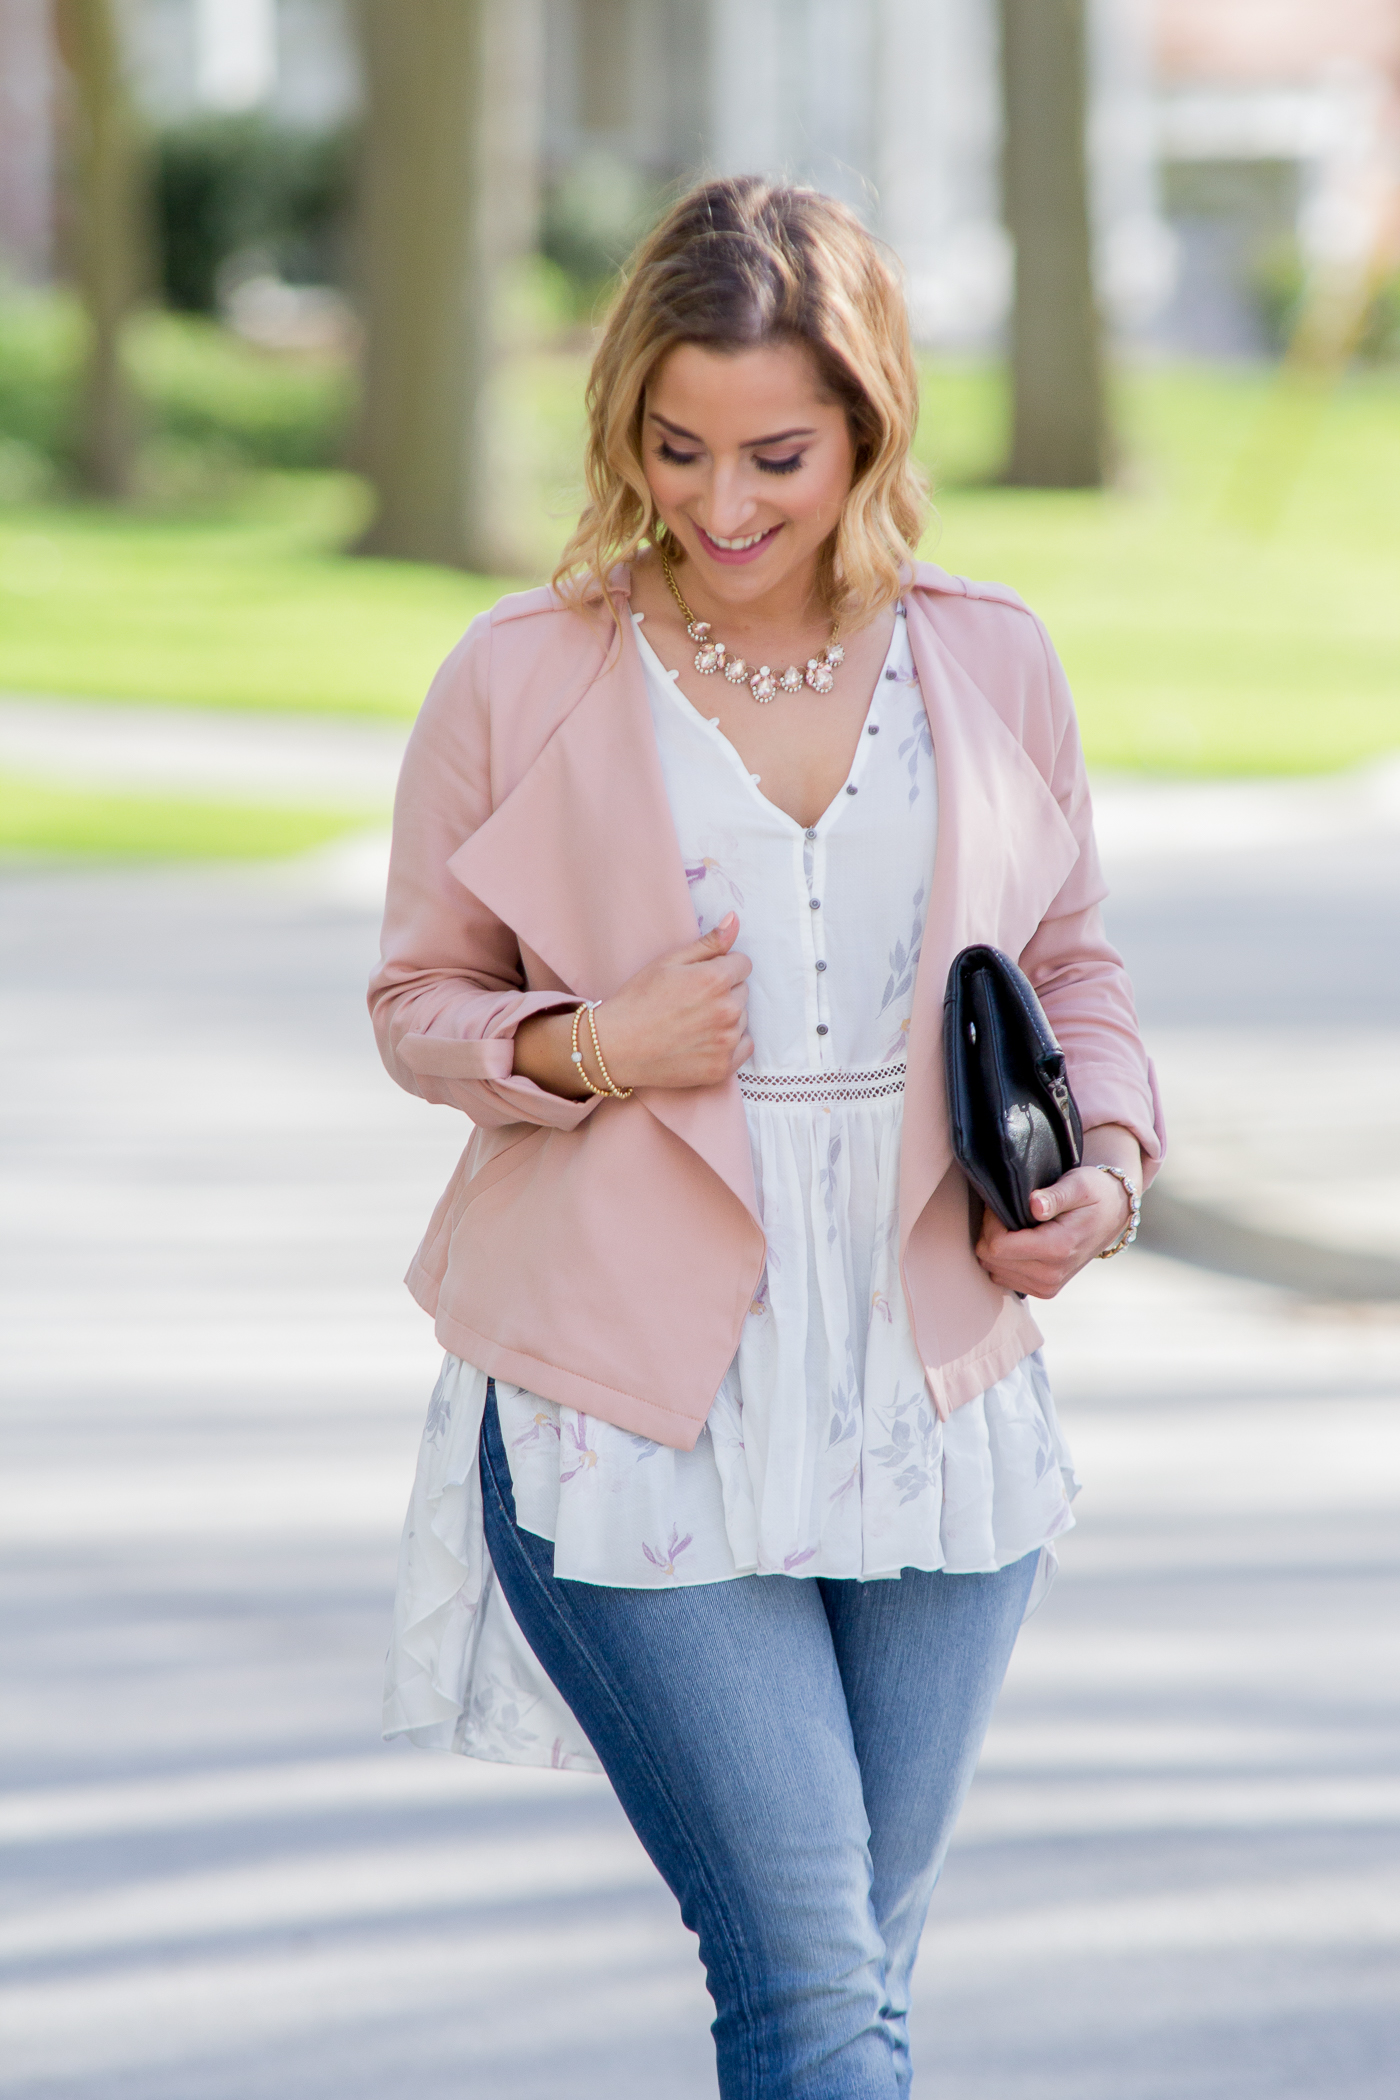 Summer outfit ideas from Lemonberry, like this pink jacket with a pretty blouse and 7FAM jeans